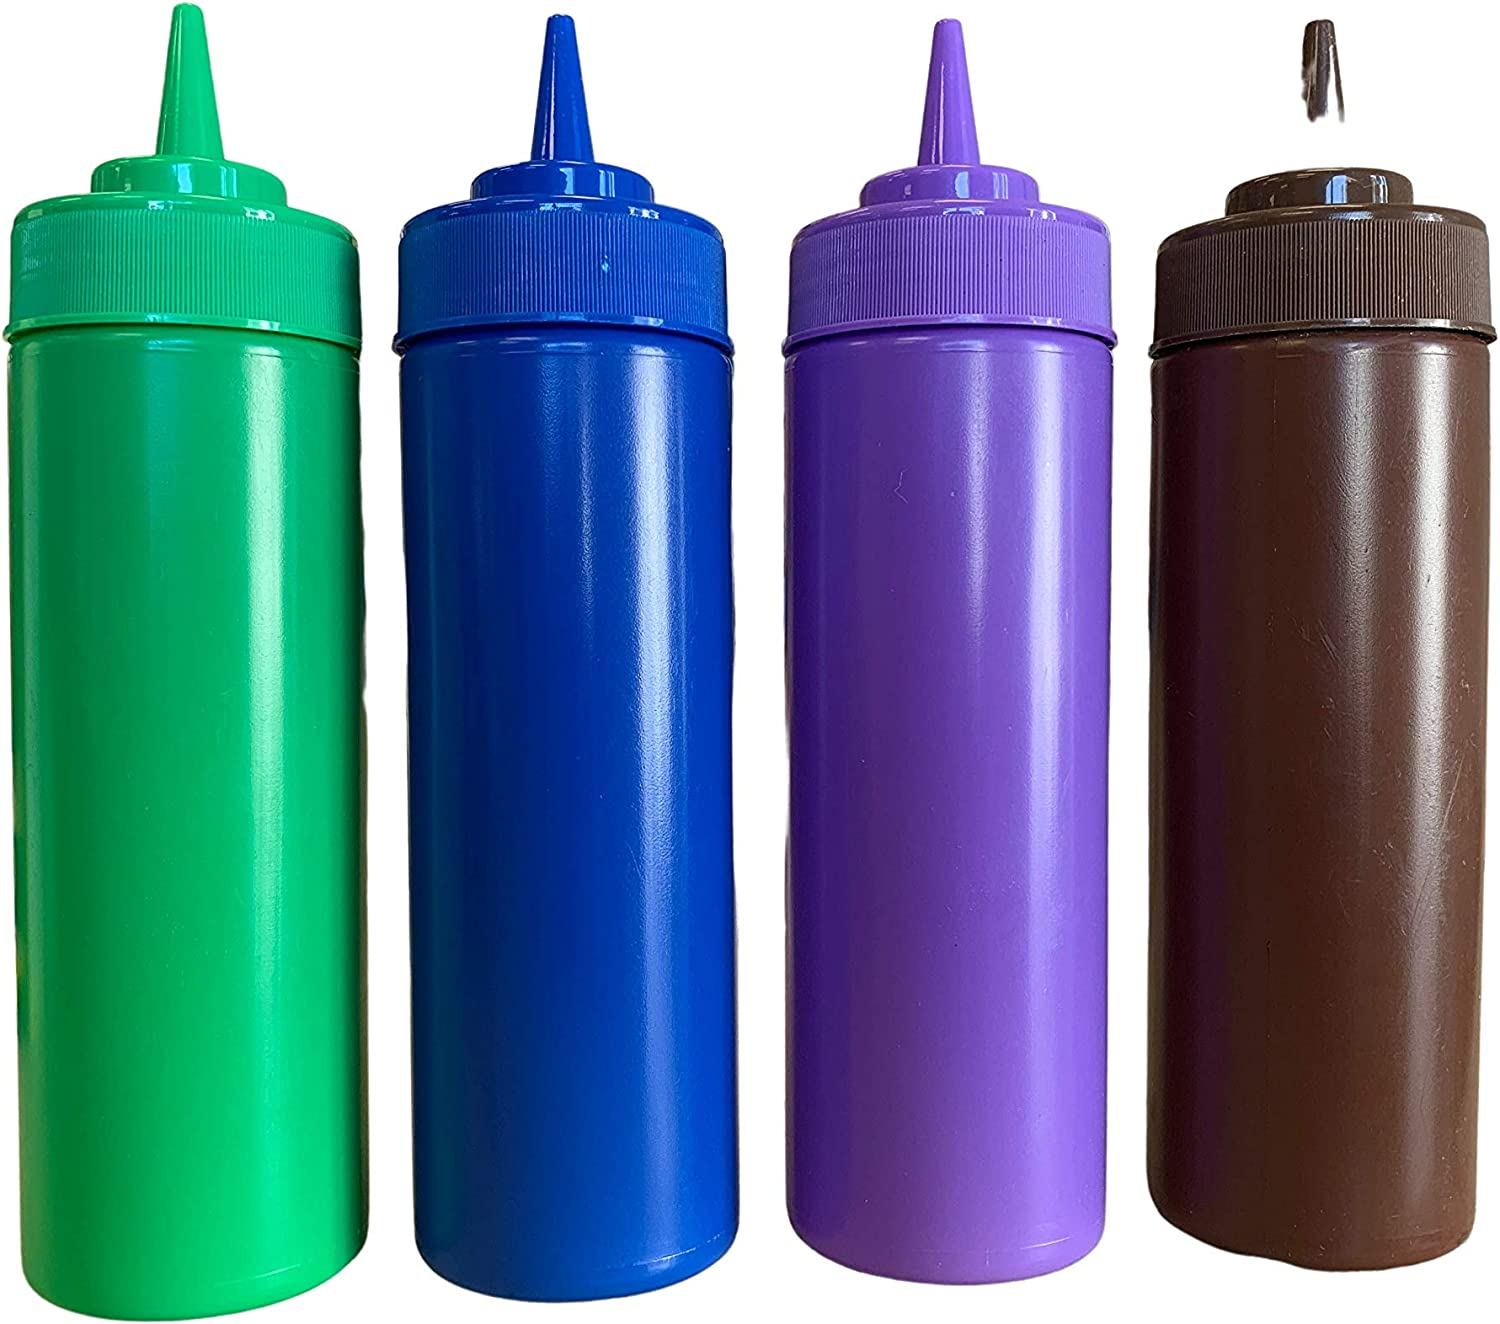 bark and lindy Rainbow Colors BPA Free Food Prep 12 oz Plastic Condiment Squeeze Bottle with Twist On Cap for Hot Sauces Ketchup Mustard Mayo Bundle of 4 Colors